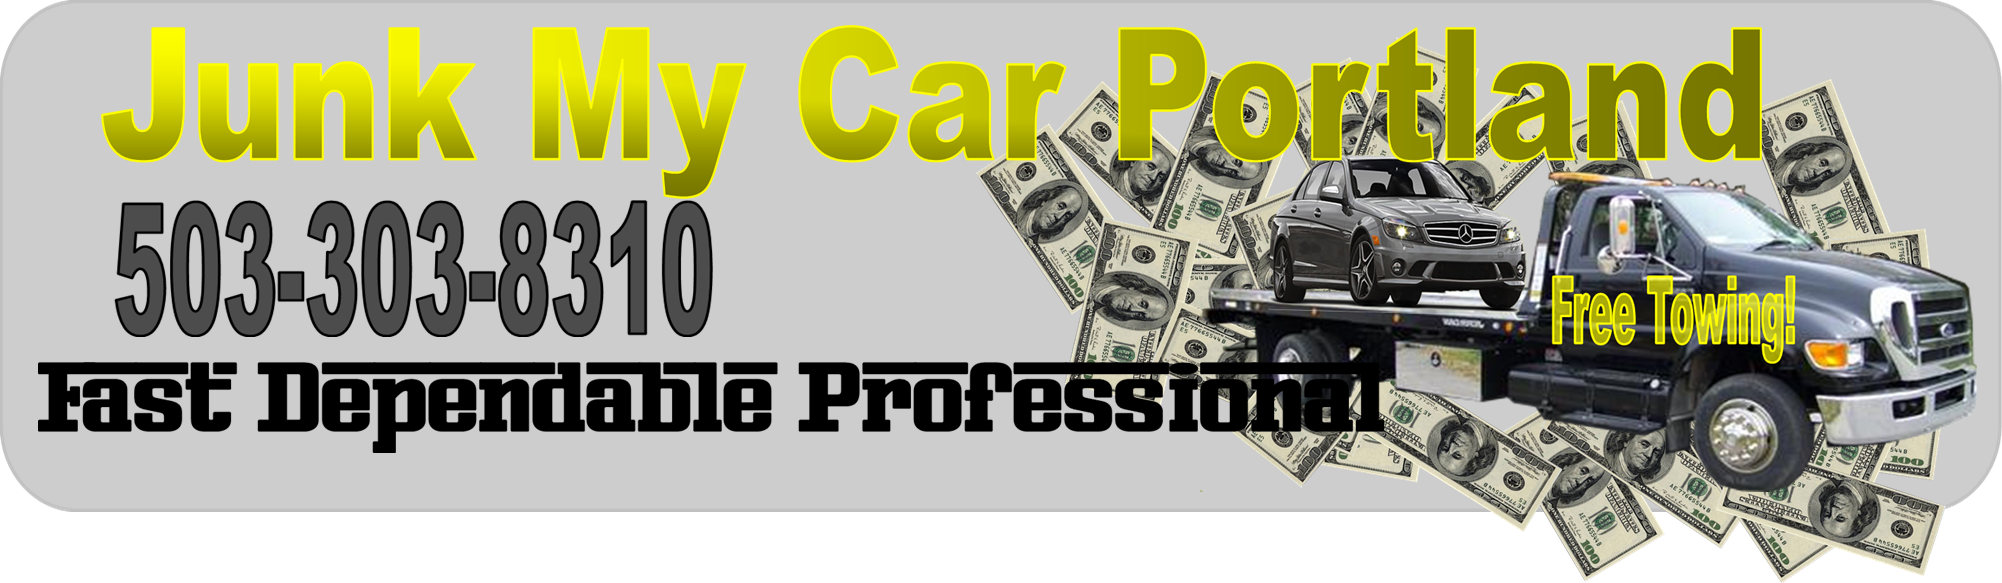 Cash For Junk Cars Online Quote Pleasing Cash For Junk Cars Portland  Junk My Car Portland